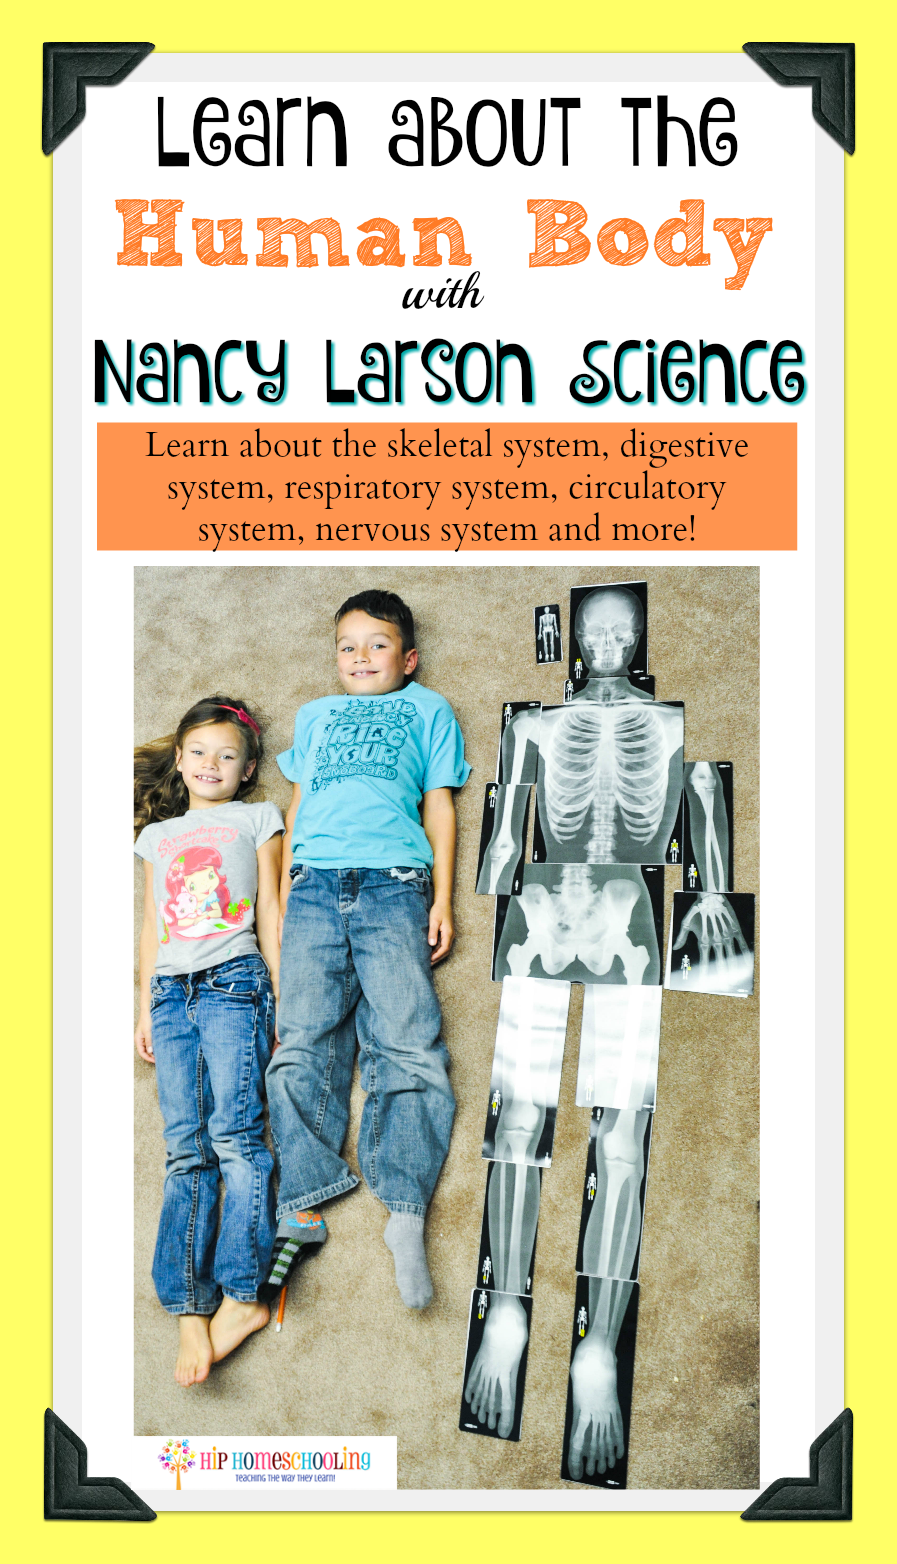 Learn about the human body with Nancy Larson Science